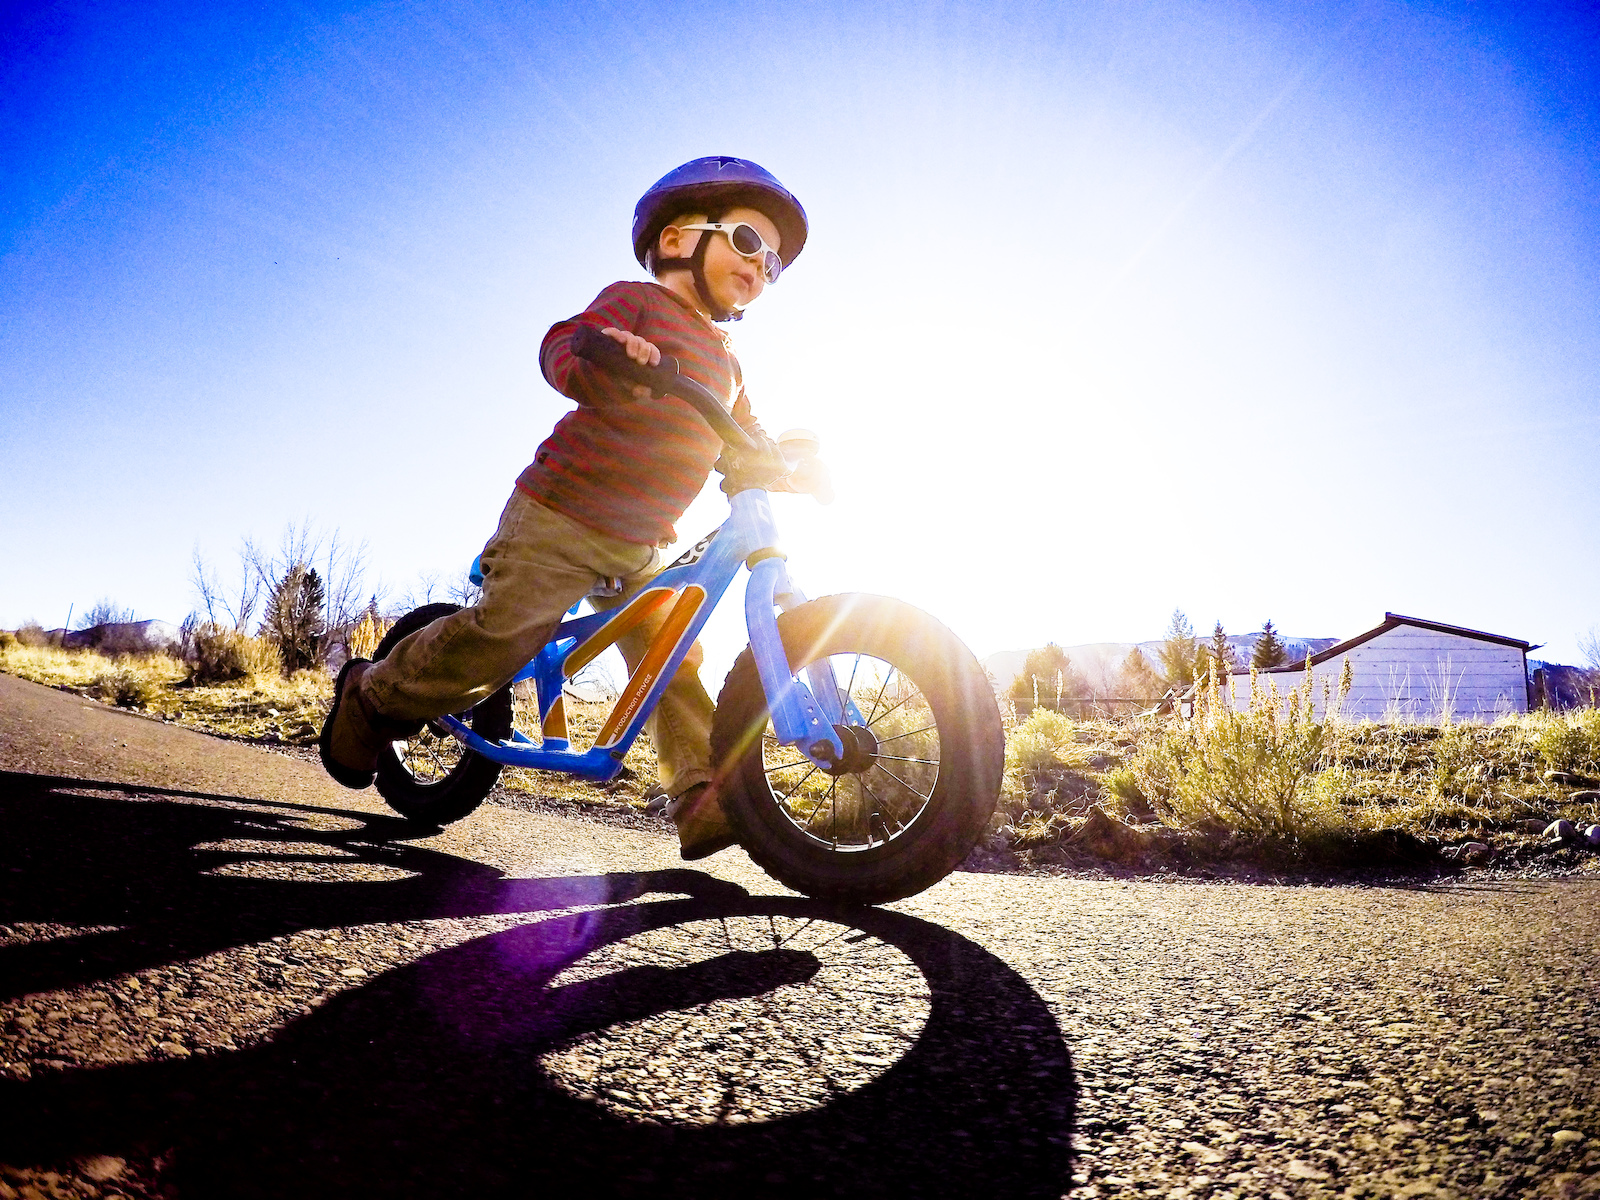 Duncan is 2.5 years old and asks me every day to ride his Production Privee Mini CG. Hopefully he's channeling Gracia's athleticism on the bike.This was my first time using the GoPro Silver and it was magic.